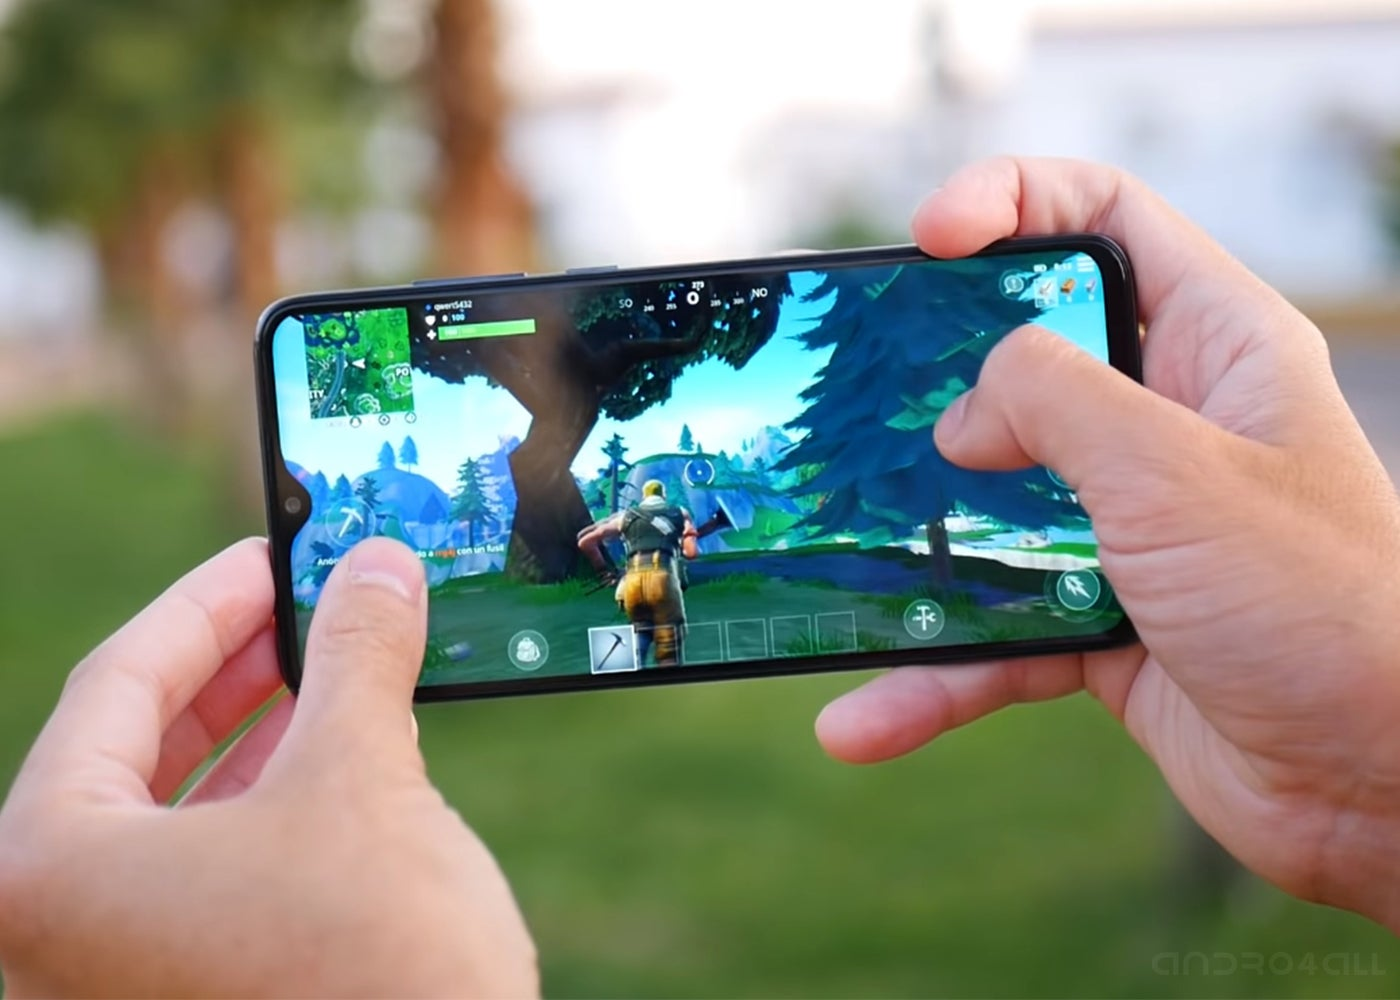 Games on the Redmi NOte 8 Pro